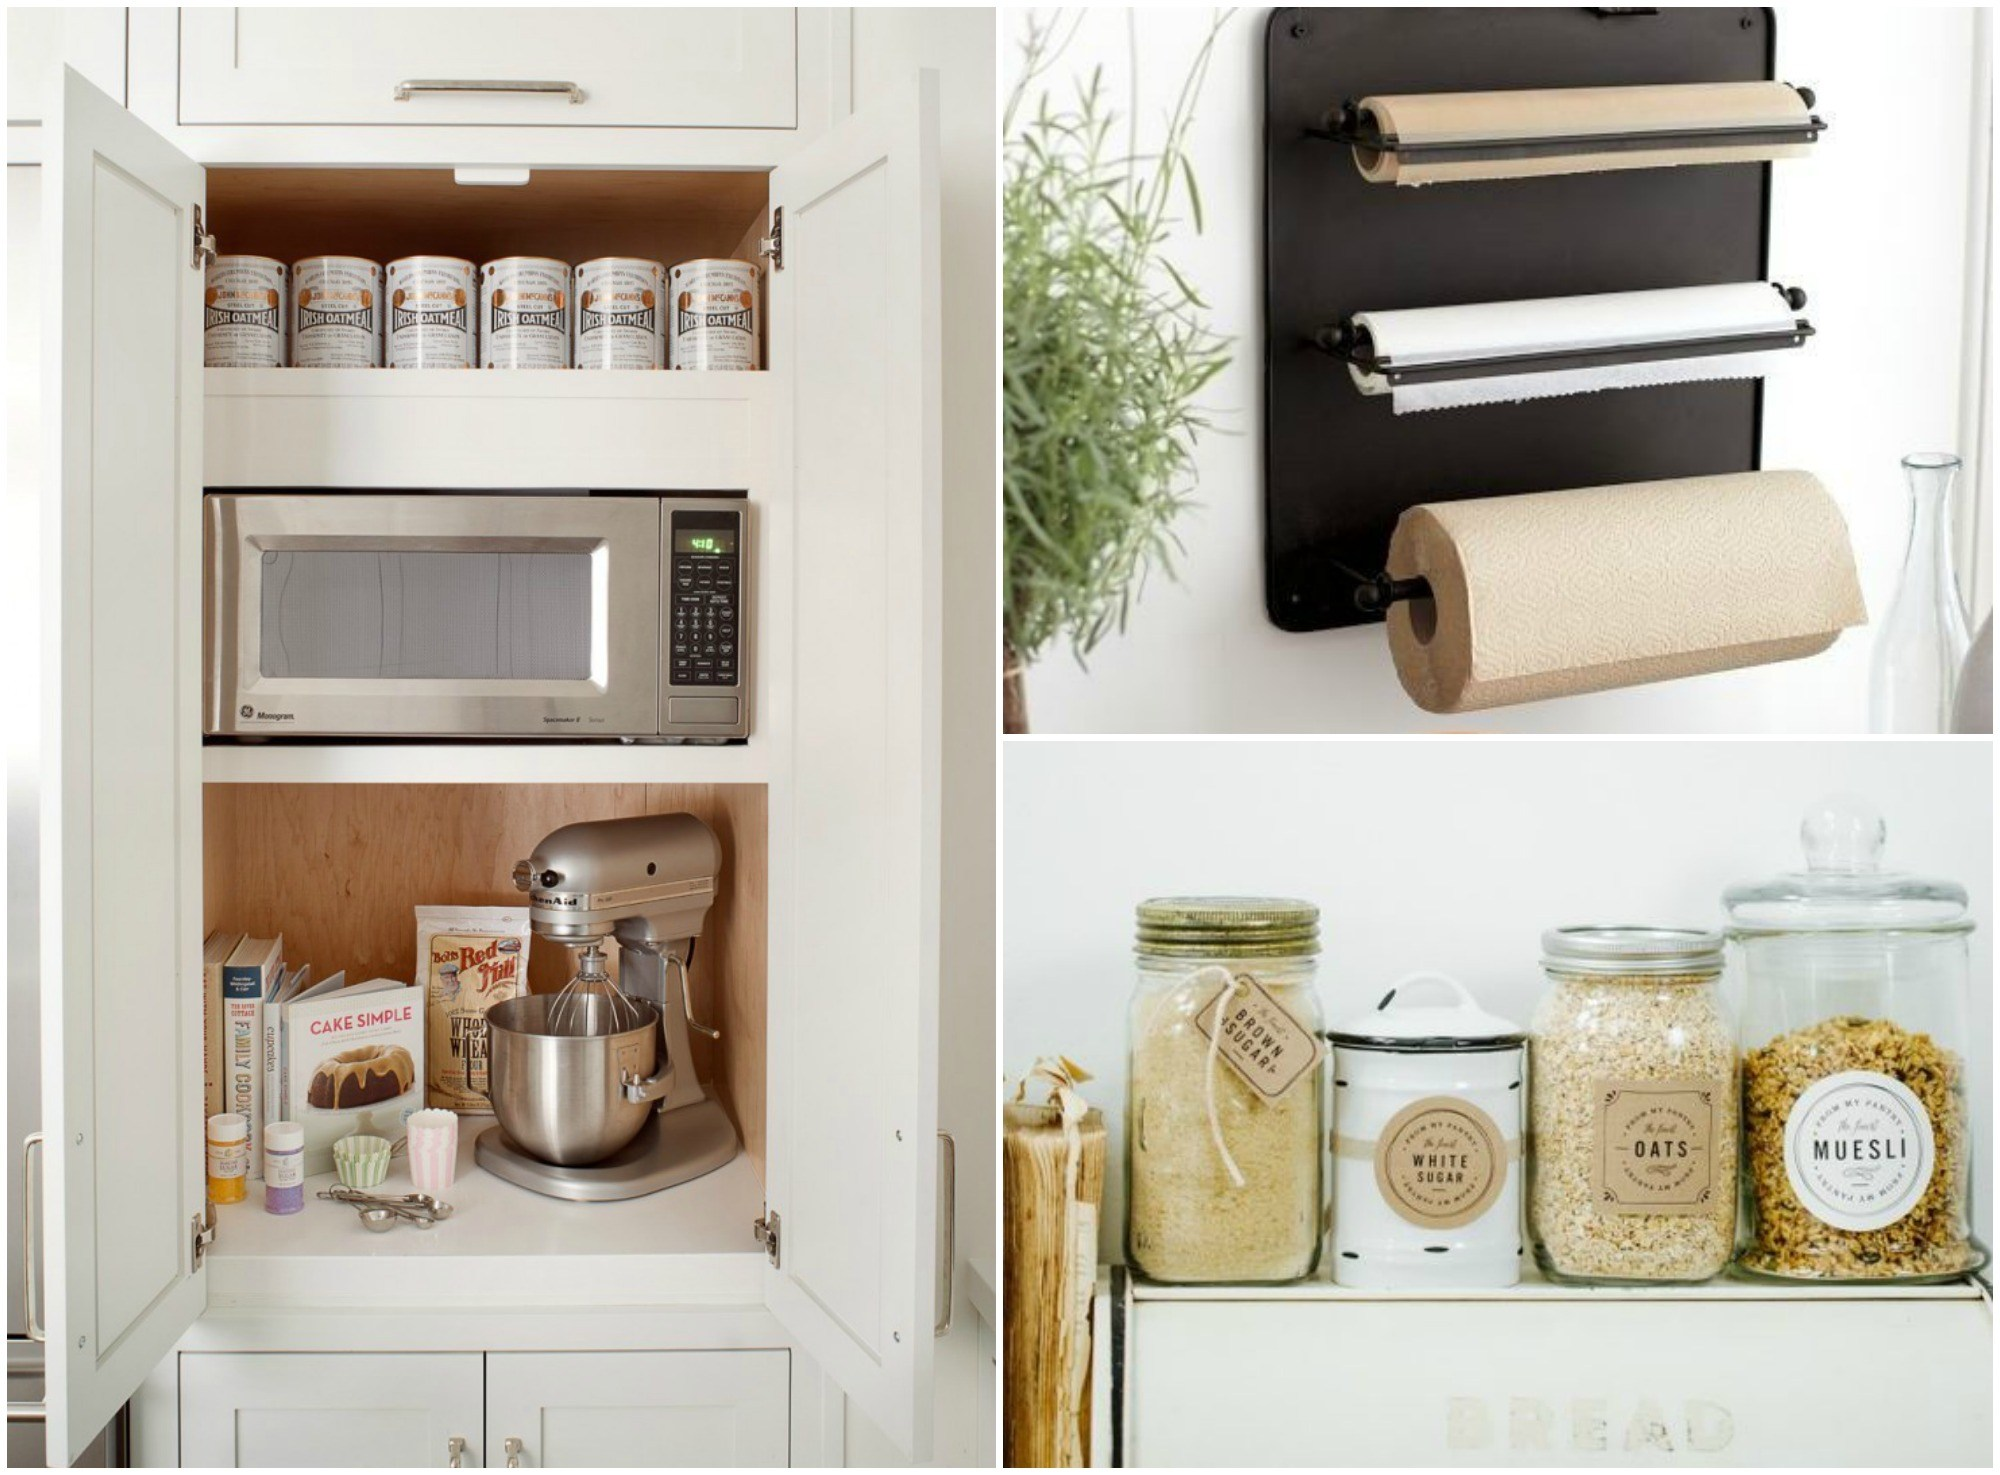 Kitchen hacks, tips and organisation